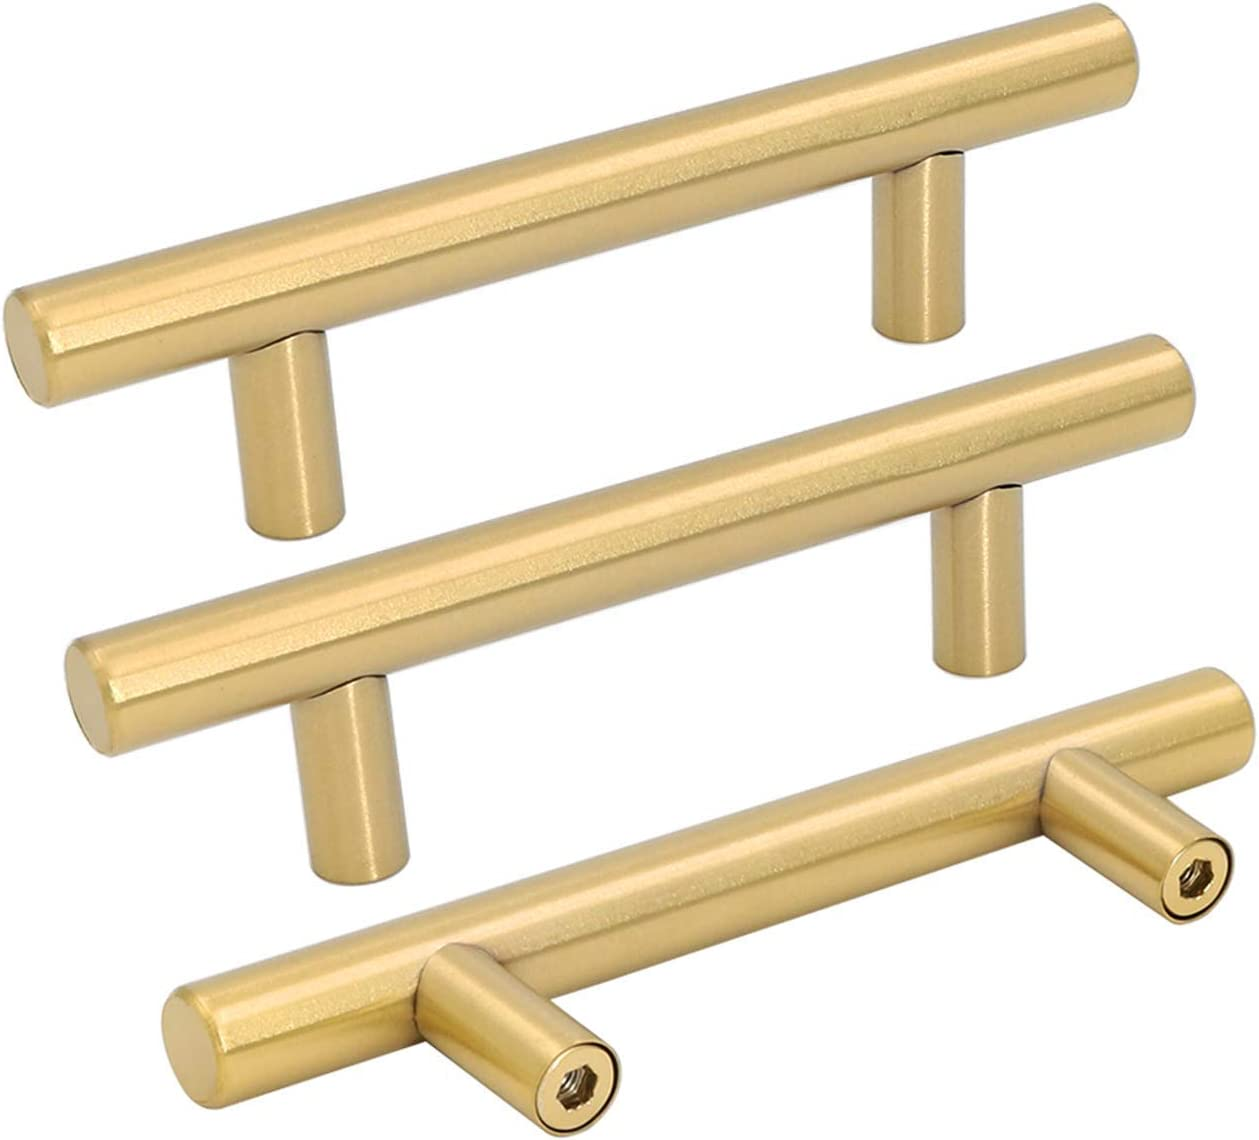 Goldenwarm 5pcs Brushed Brass Cabinet Cupboard Drawer Door Handle Pull Knob for Furniture Kitchen Hardware 3in Hole Center 5in Overall Length